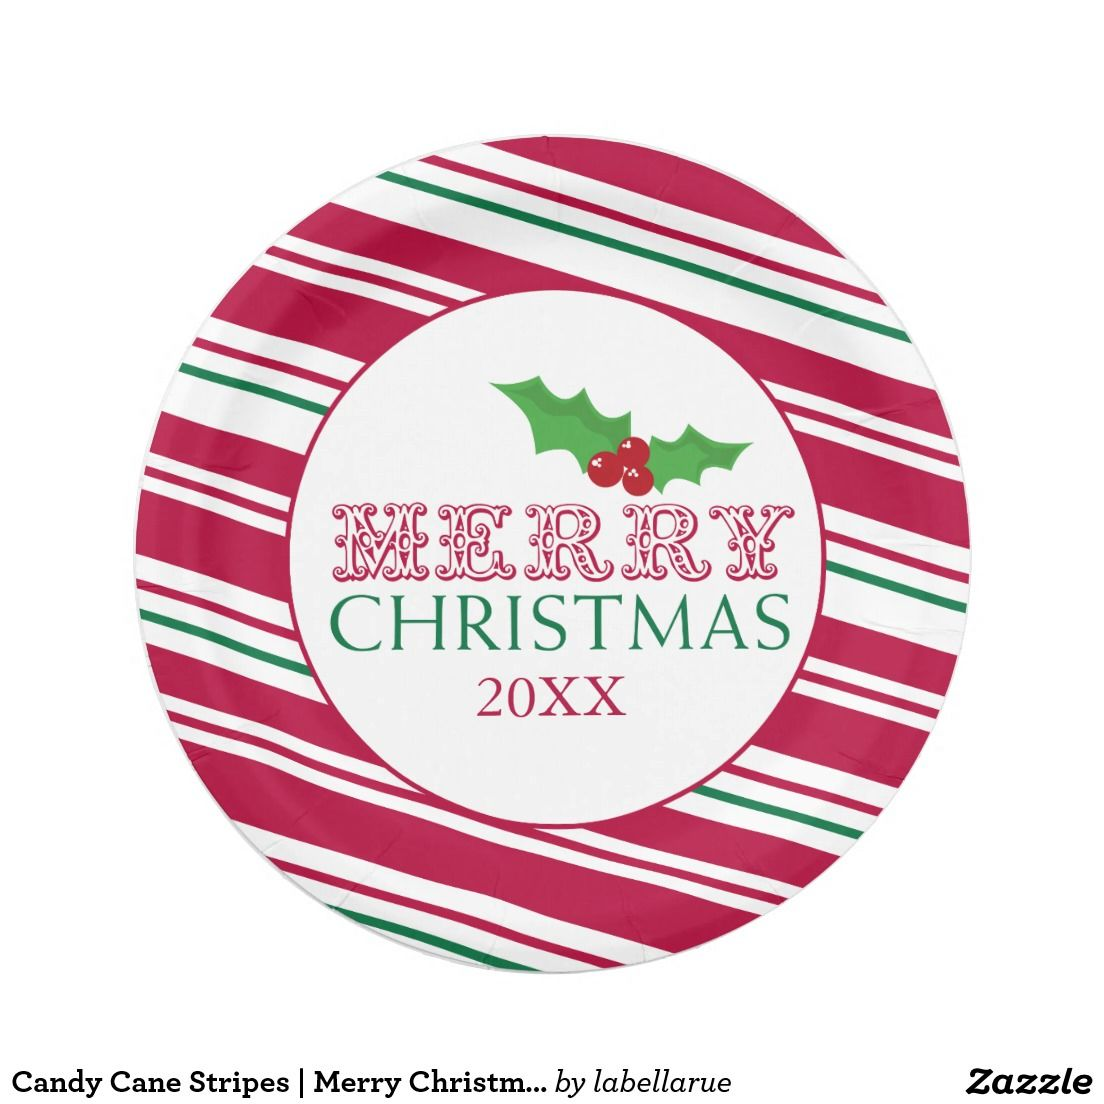 Candy Cane Stripes | Merry Christmas Paper Plate  sc 1 st  Pinterest & Candy Cane Stripes | Merry Christmas Paper Plate | Christmas Paper ...